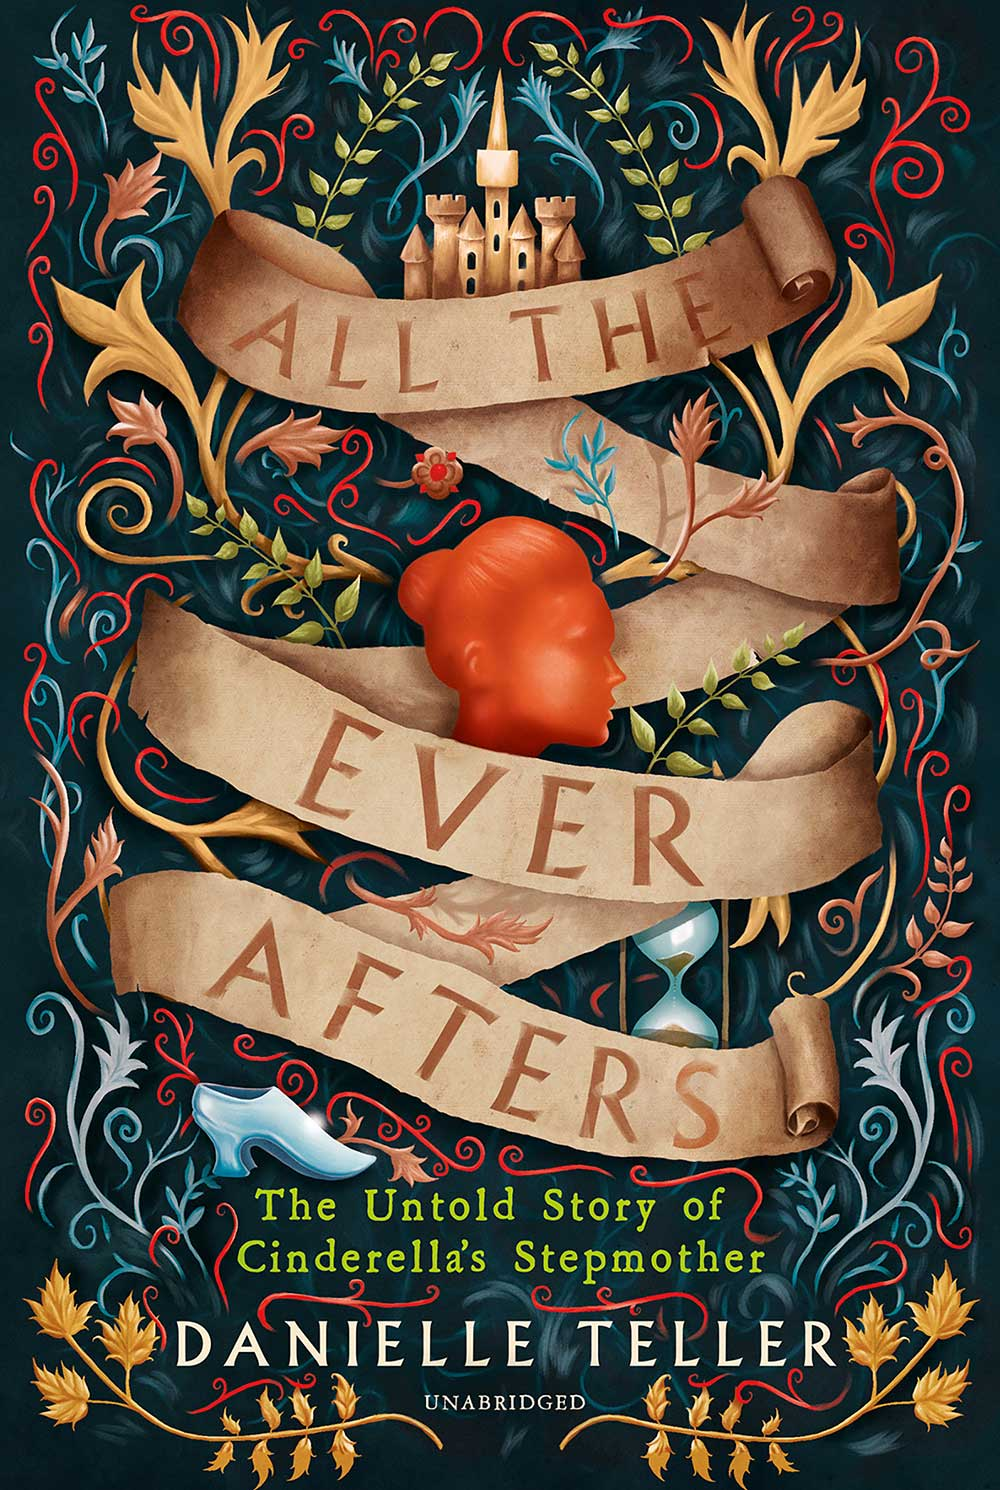 03-All-the-Ever-After